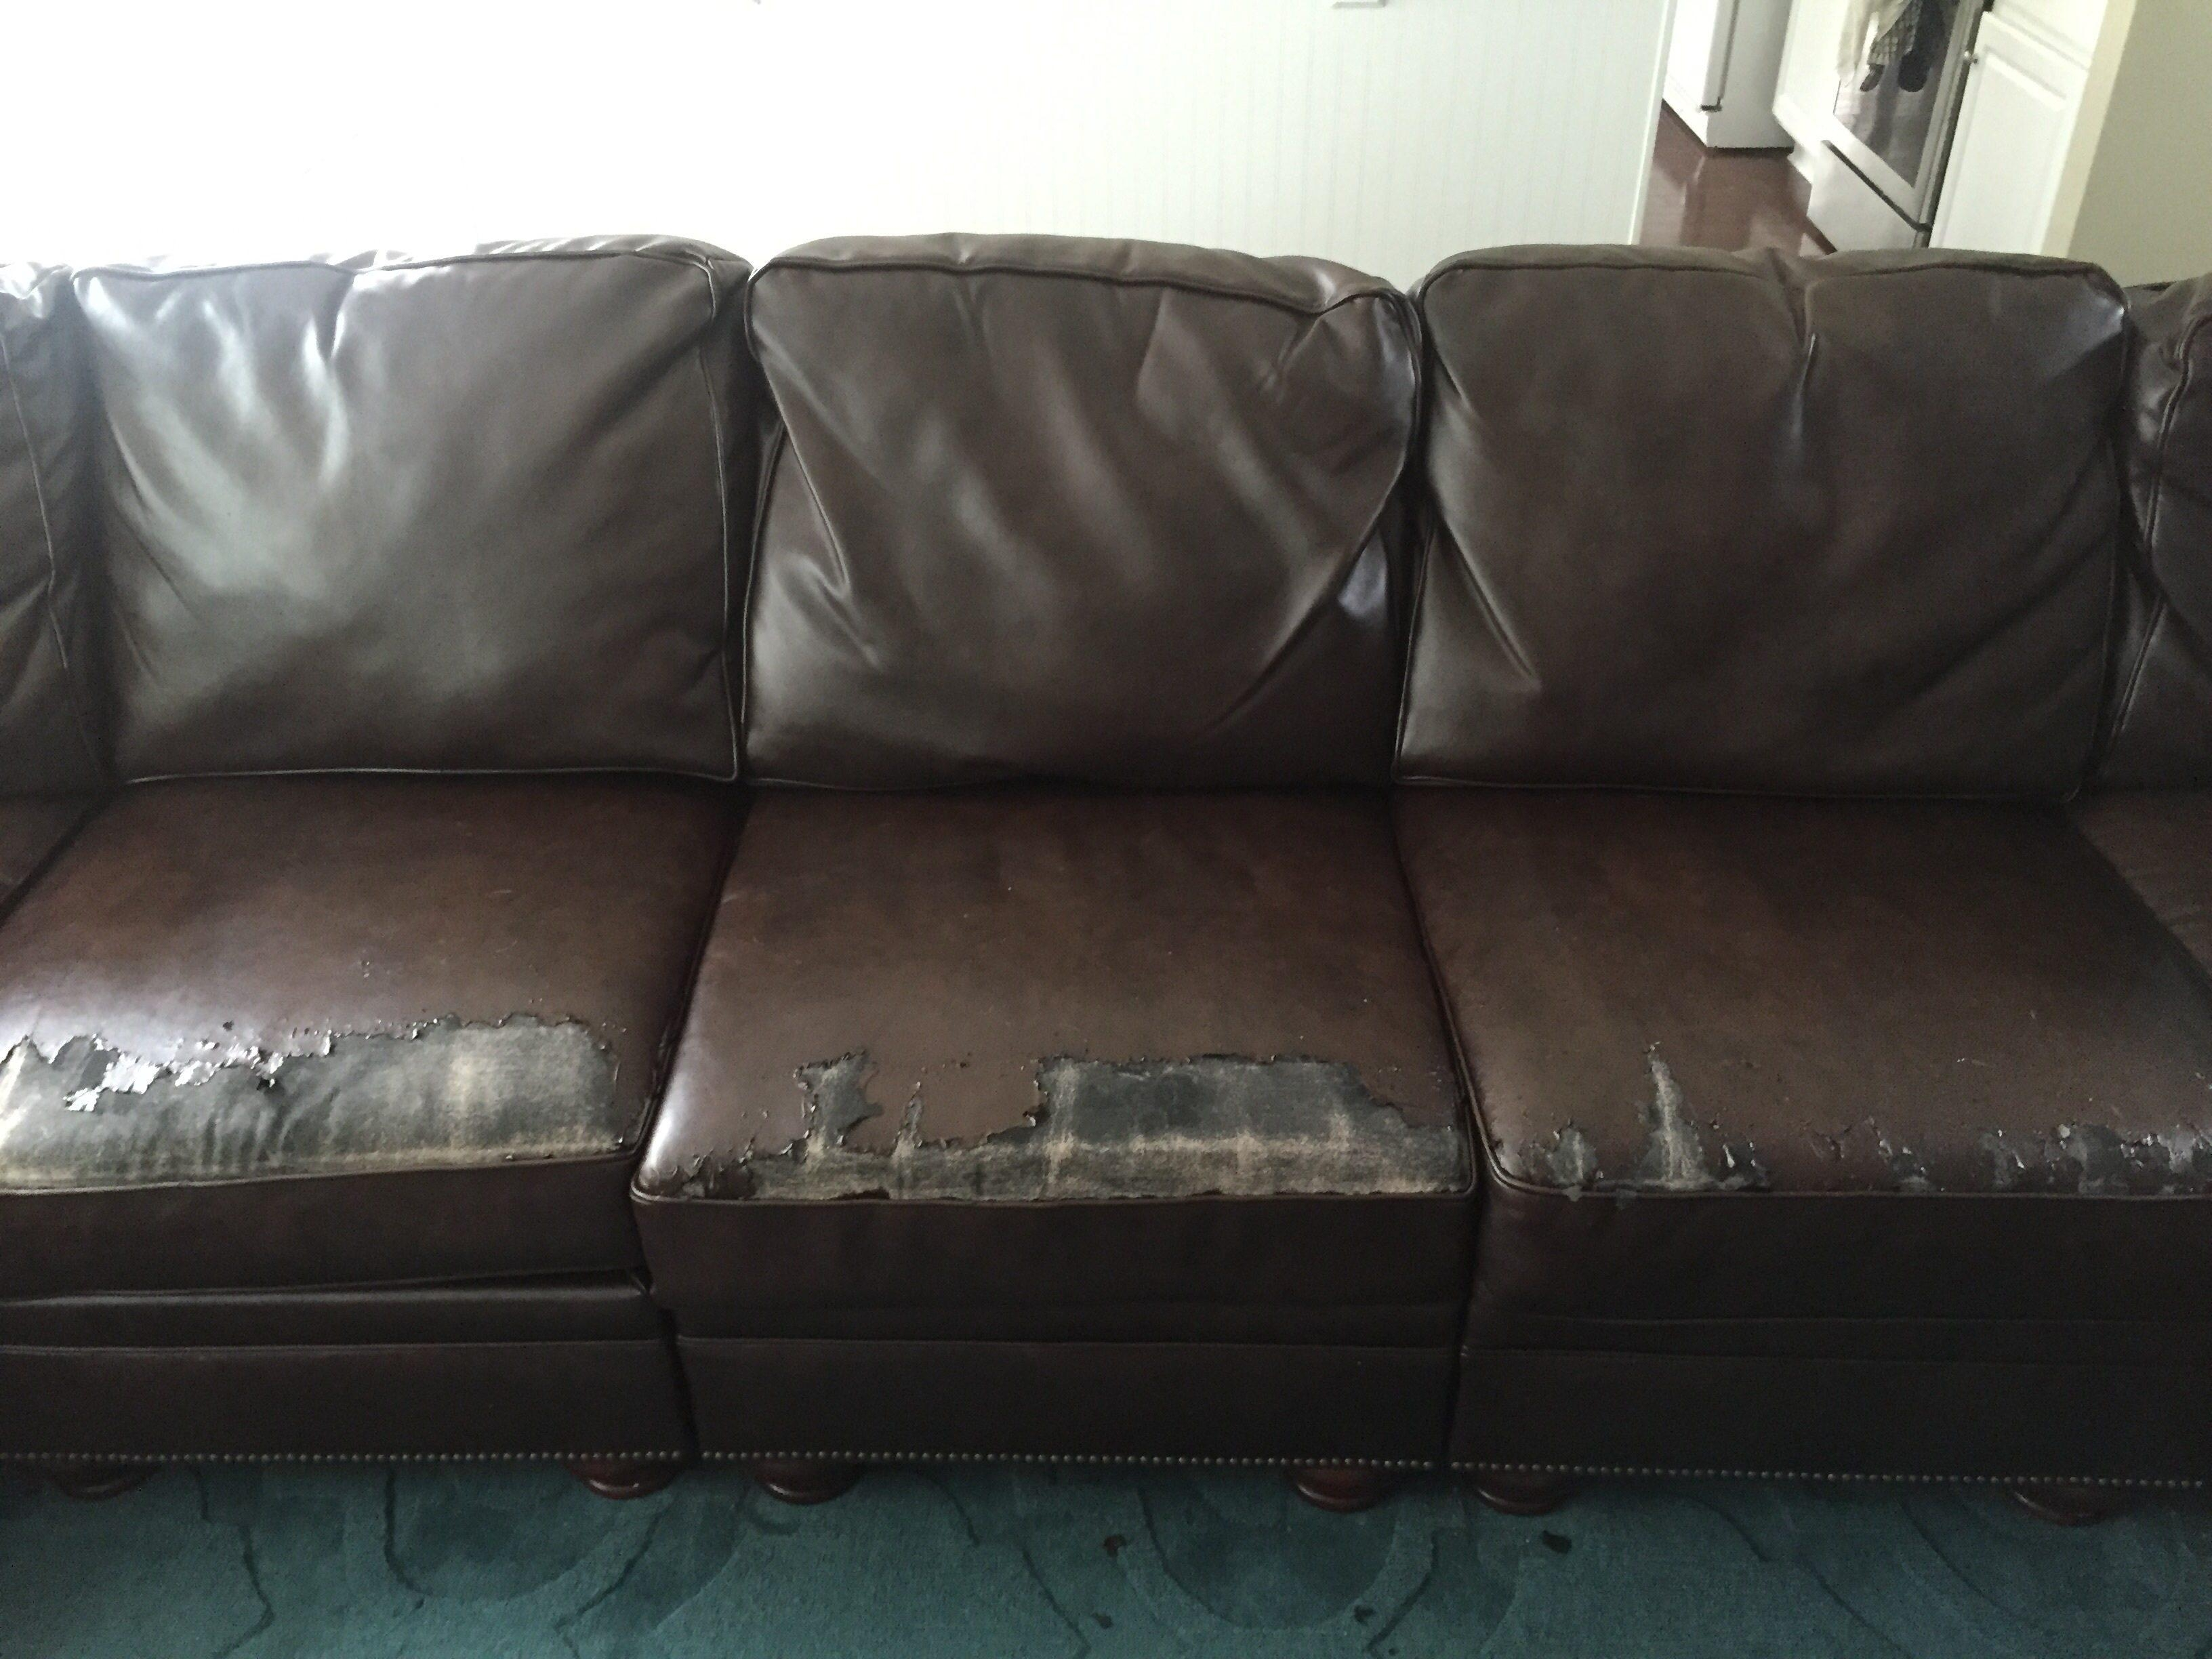 Top 129 Reviews And Complaints About Broyhill Pertaining To Broyhill Sectional Sofas (Image 14 of 15)